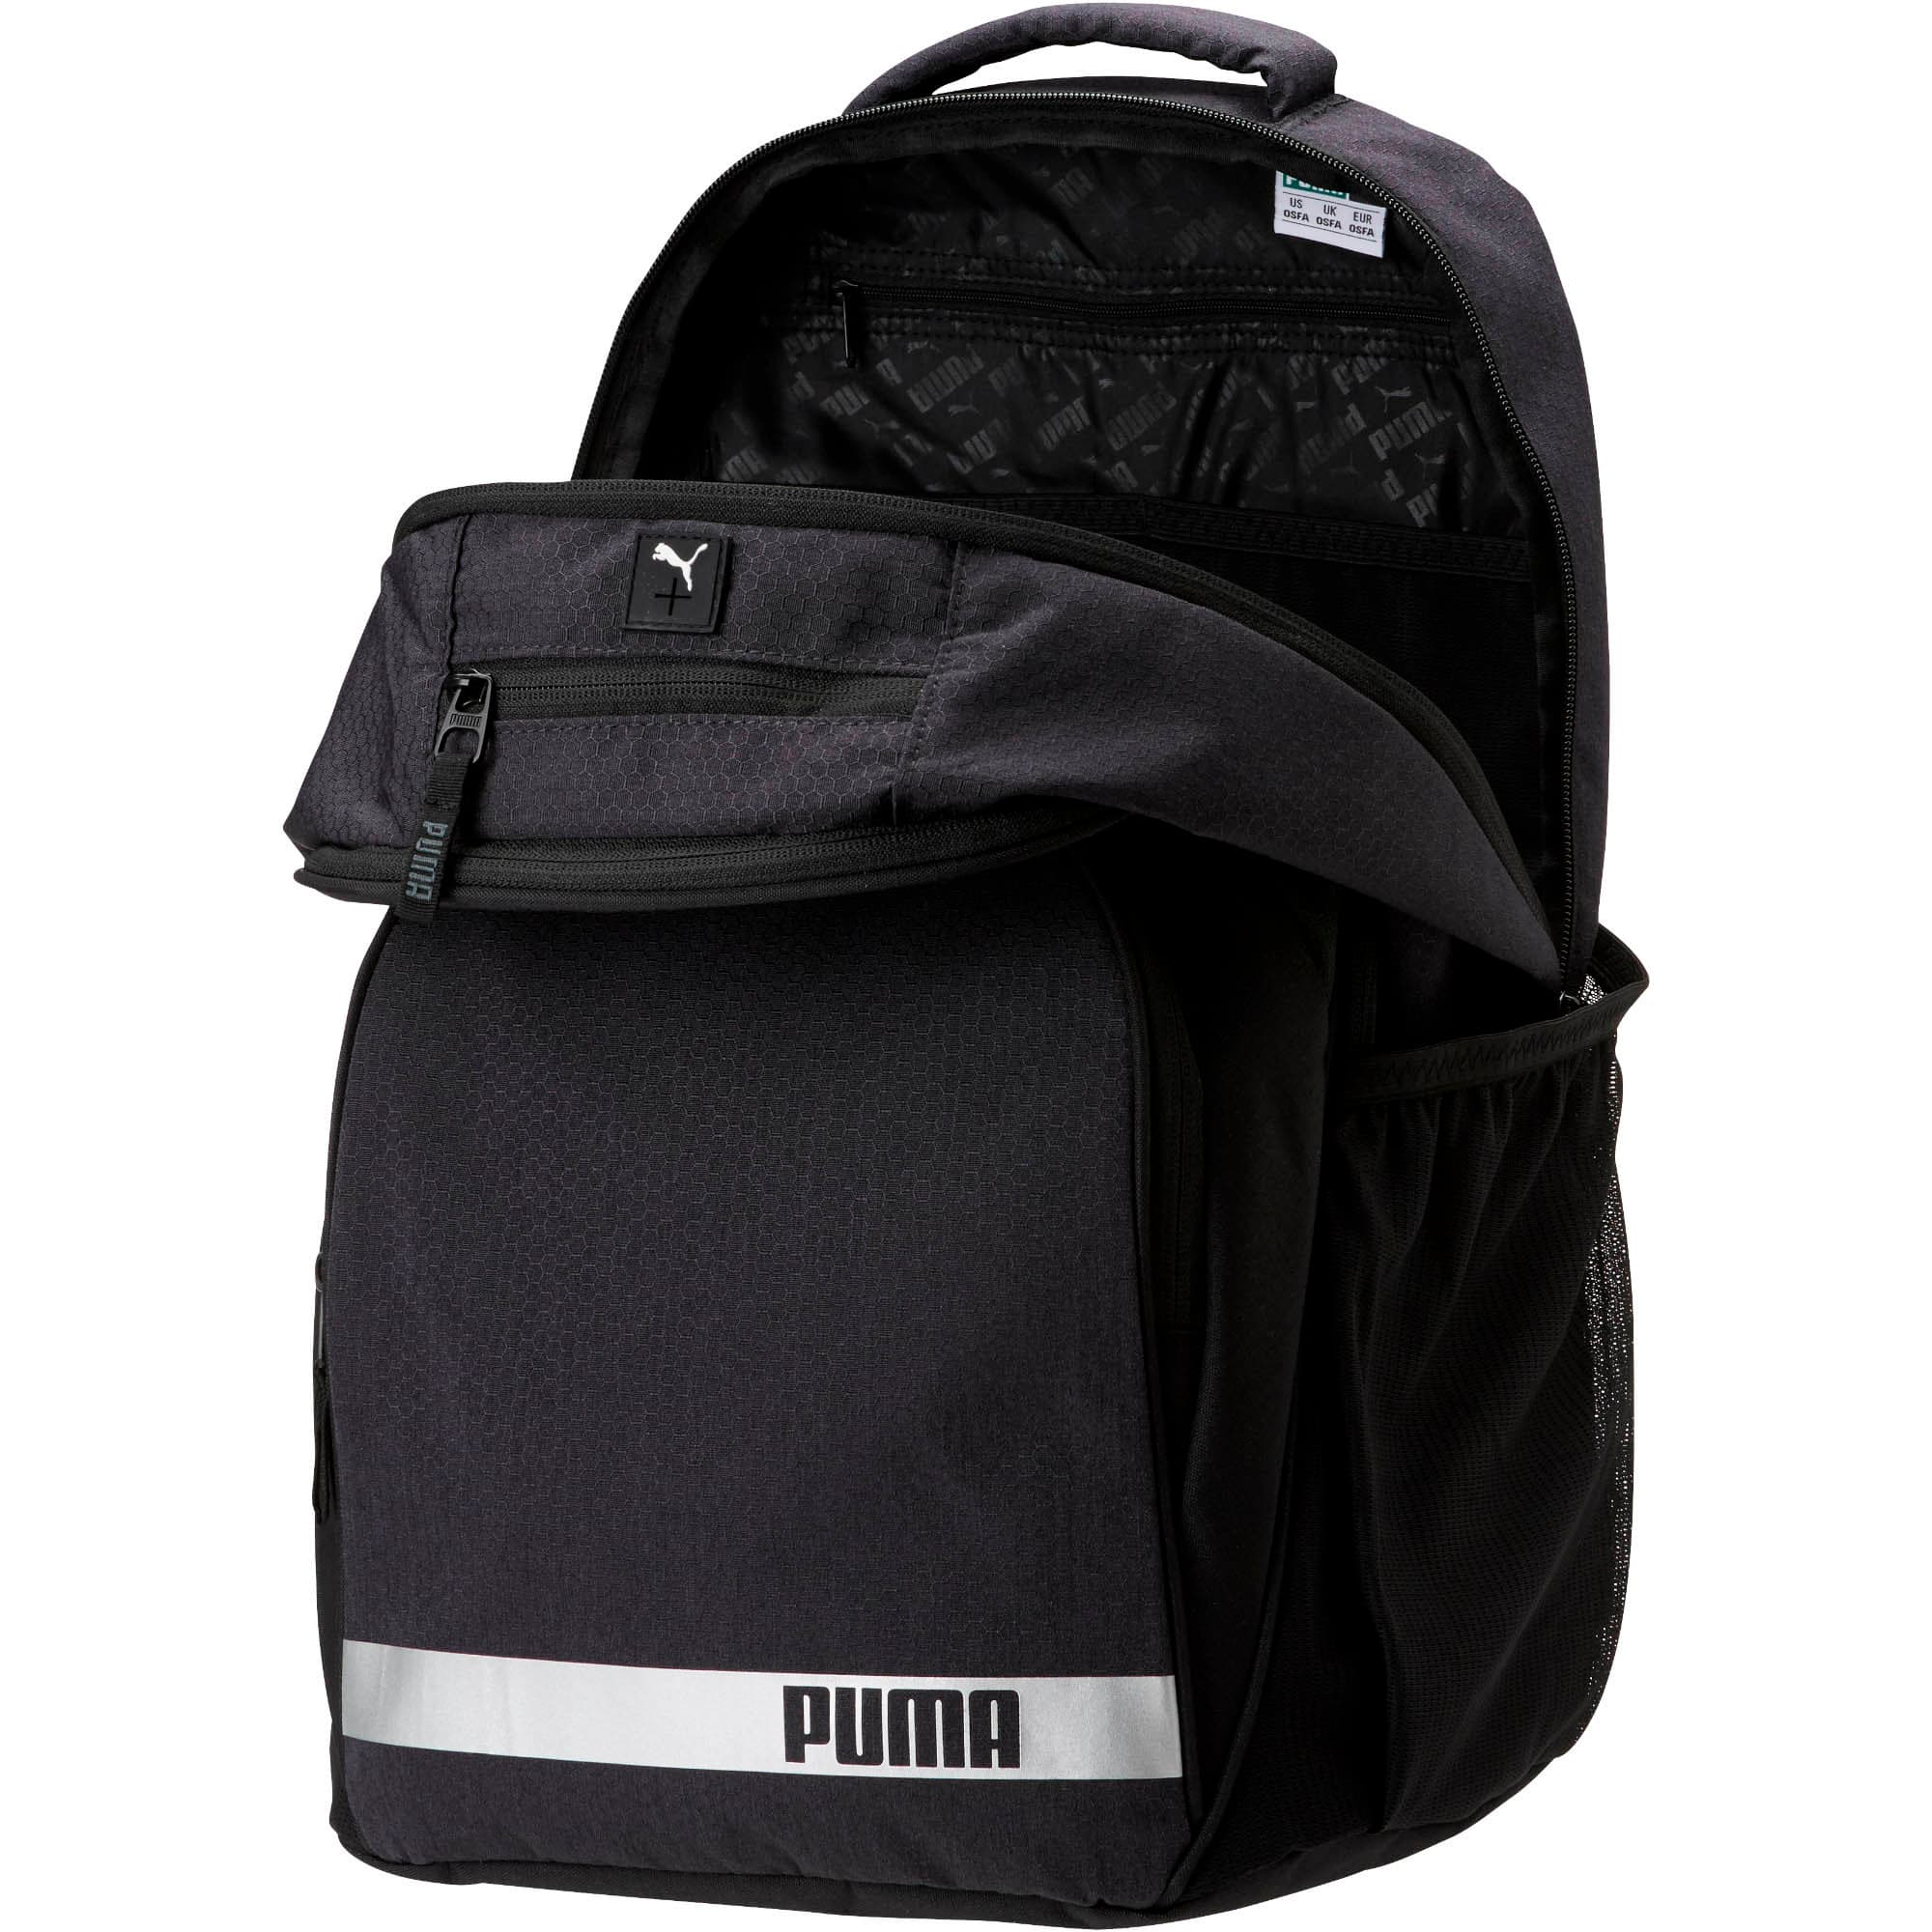 Formation 2.0 Ball Backpack, Black, large